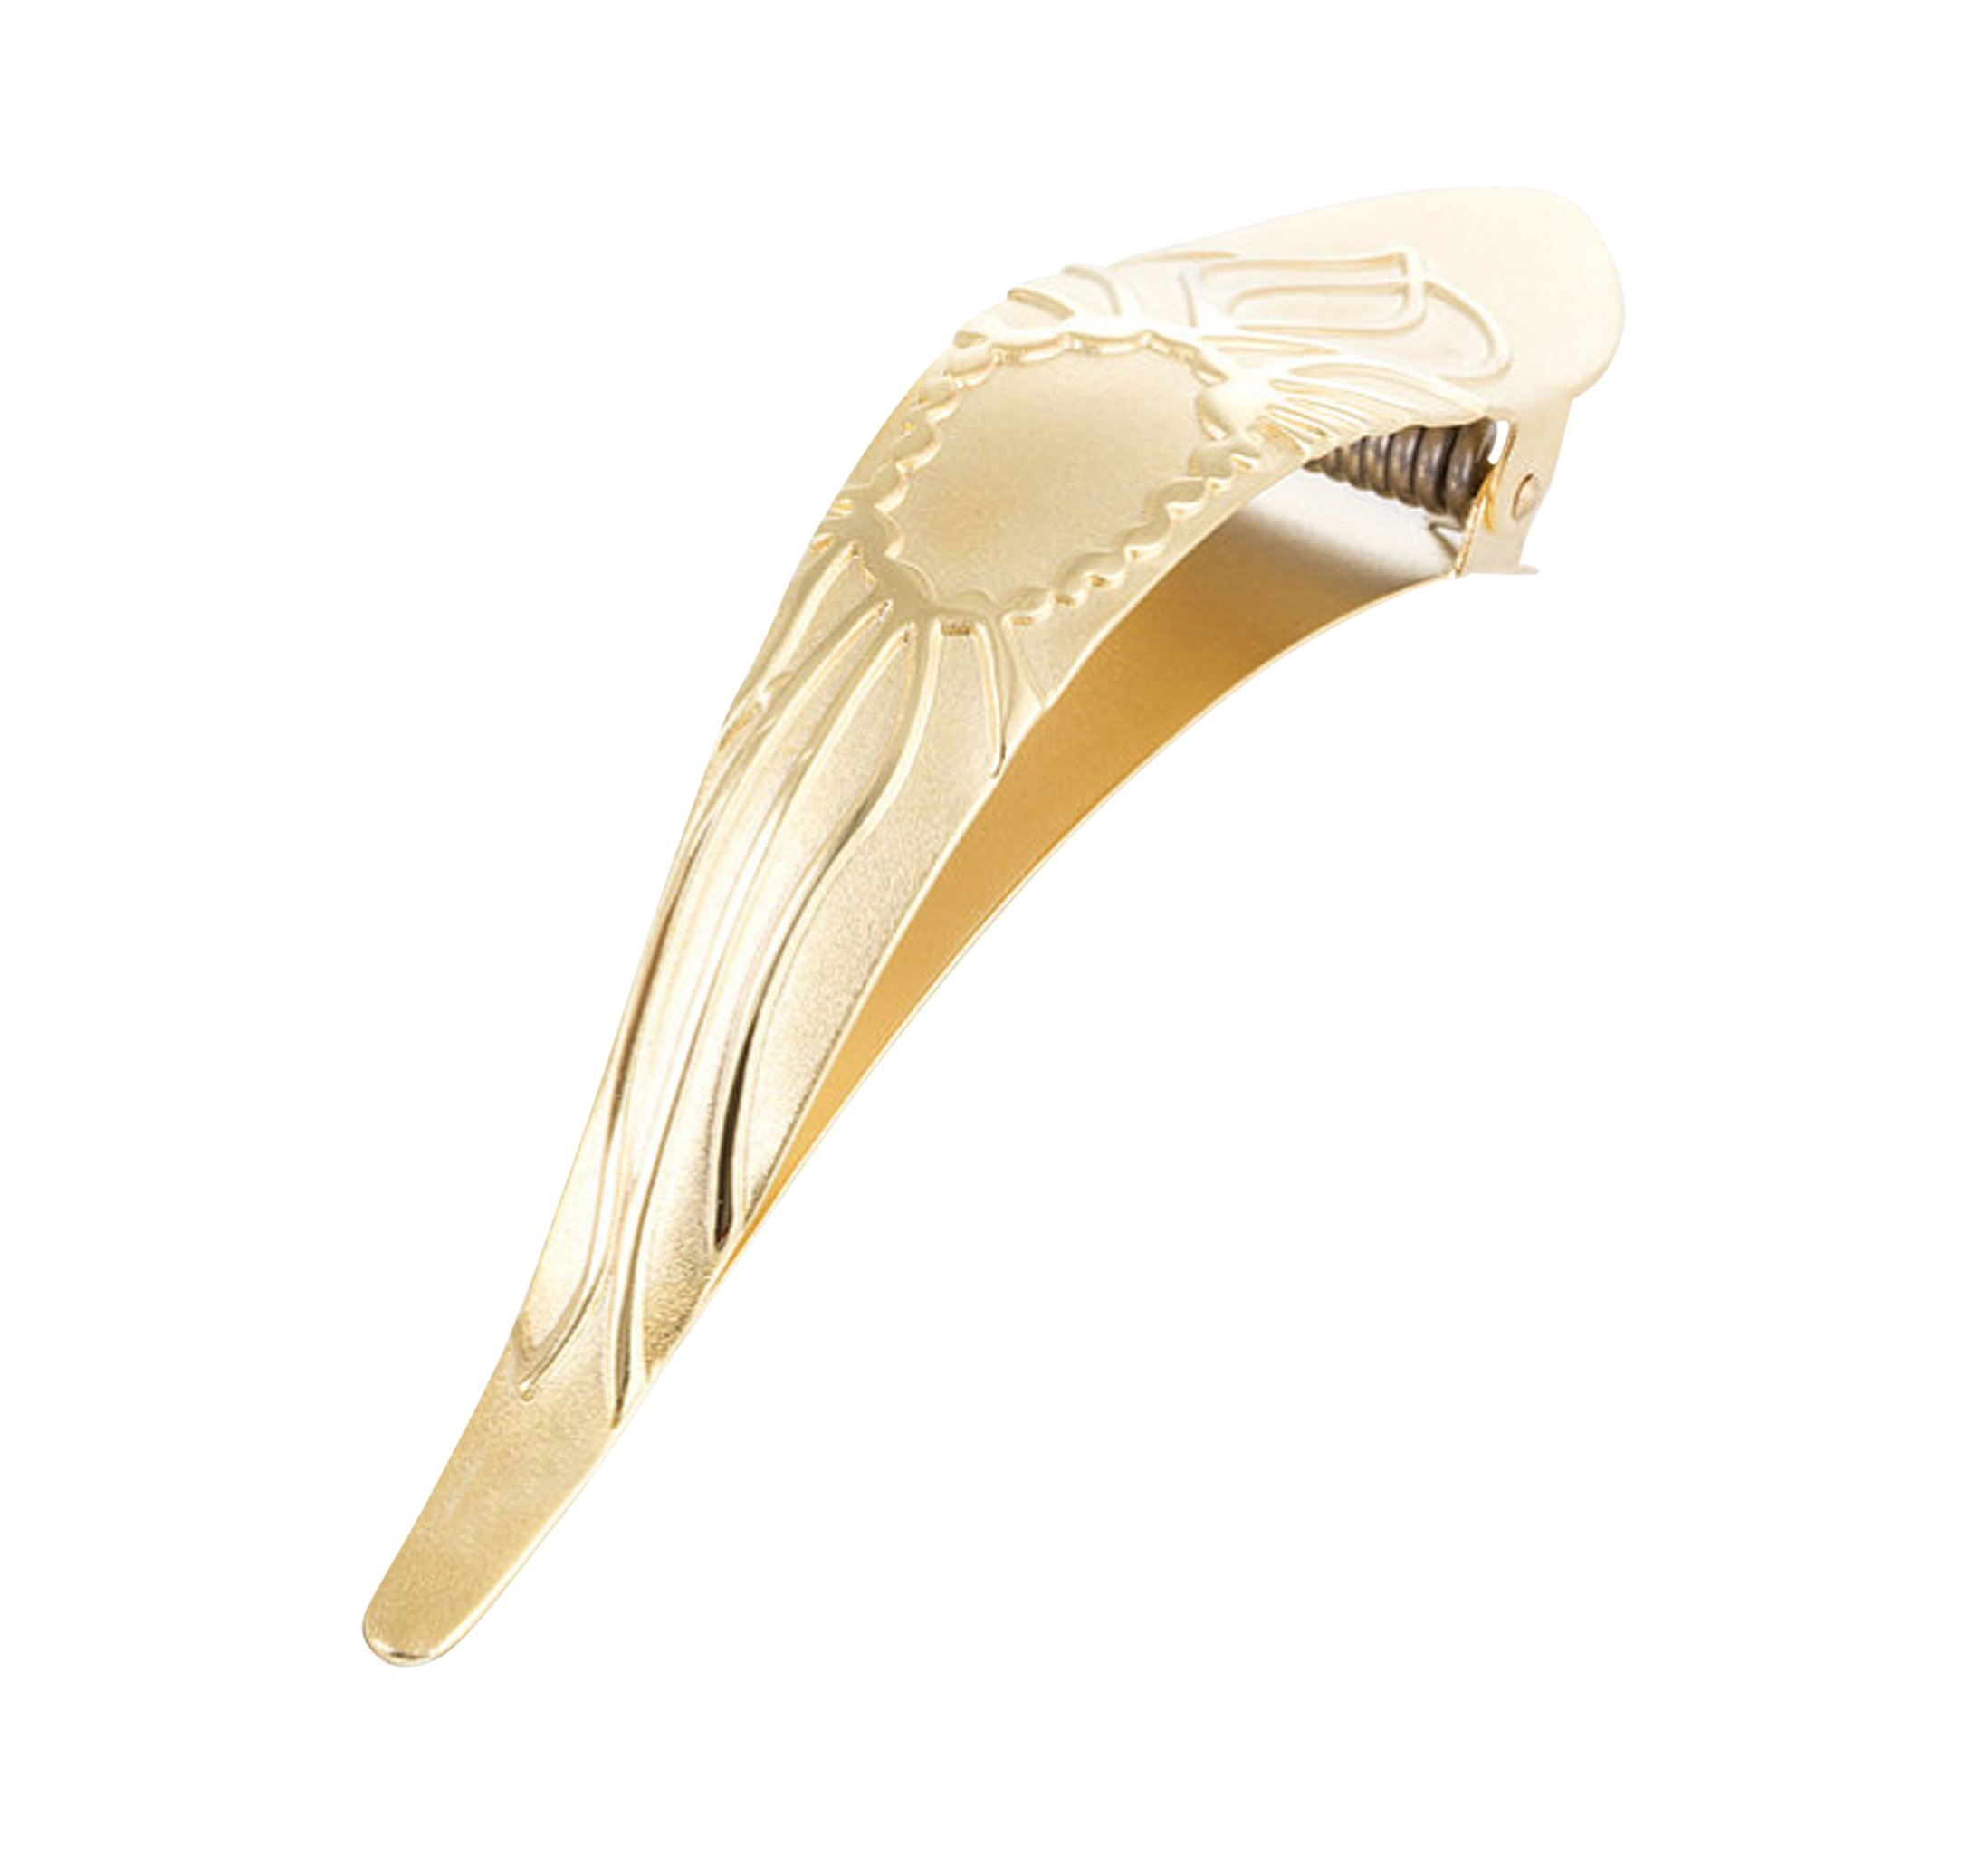 Ficcare Maximas Hair Clip in Lotus 2-Tone in Gold Plated Small